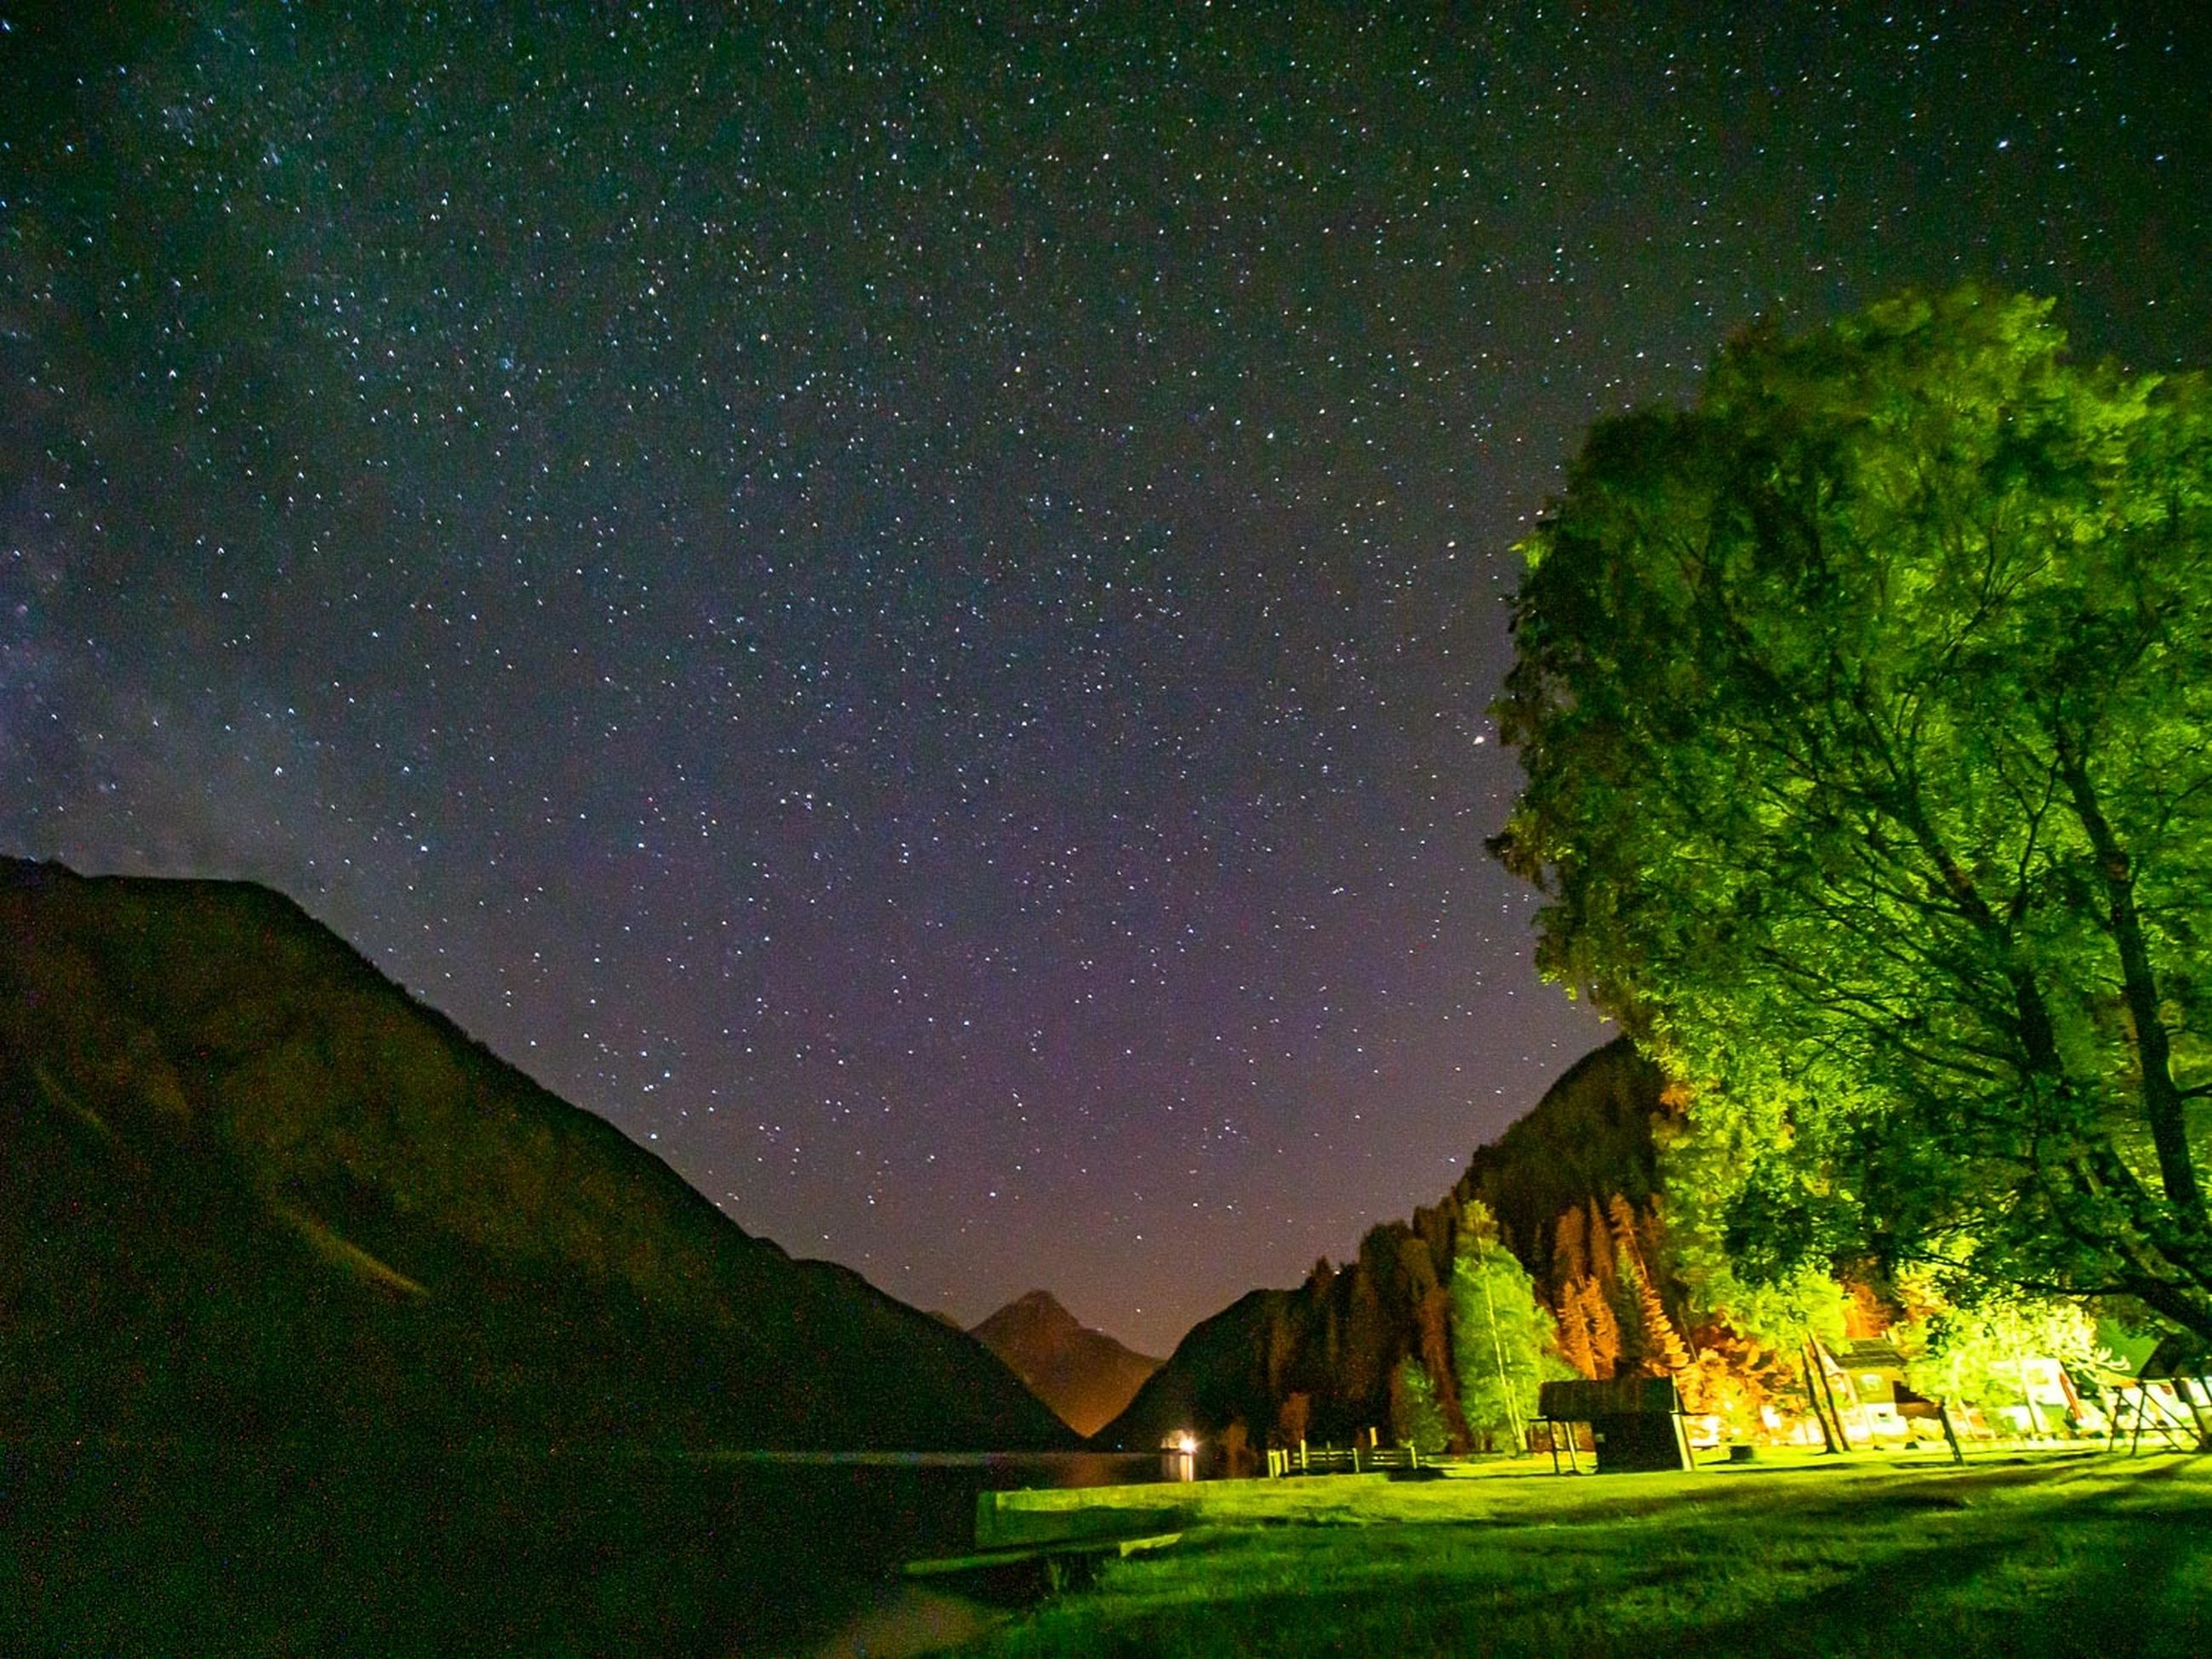 star - space, night, scenics - nature, space, beauty in nature, astronomy, sky, mountain, nature, tranquil scene, tranquility, star, star field, no people, plant, galaxy, green color, tree, water, idyllic, outdoors